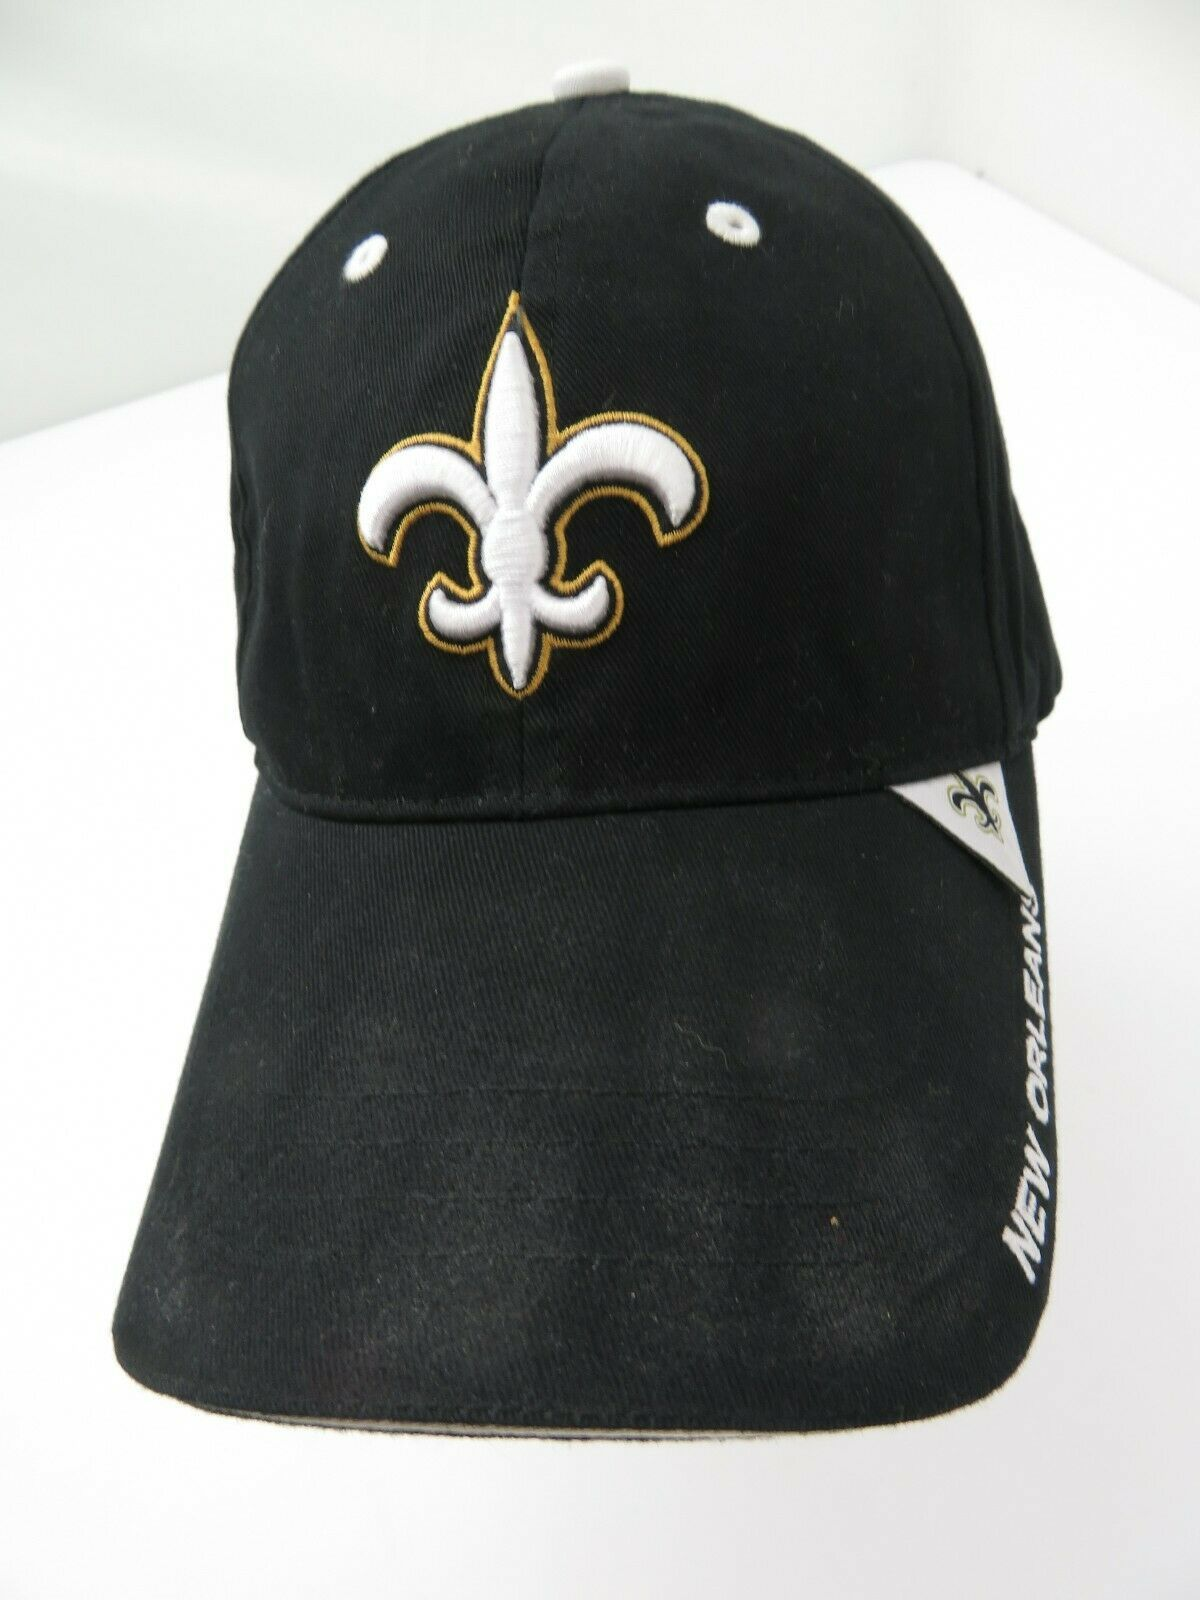 Primary image for New Orleans Adjustable Adult Cap Hat